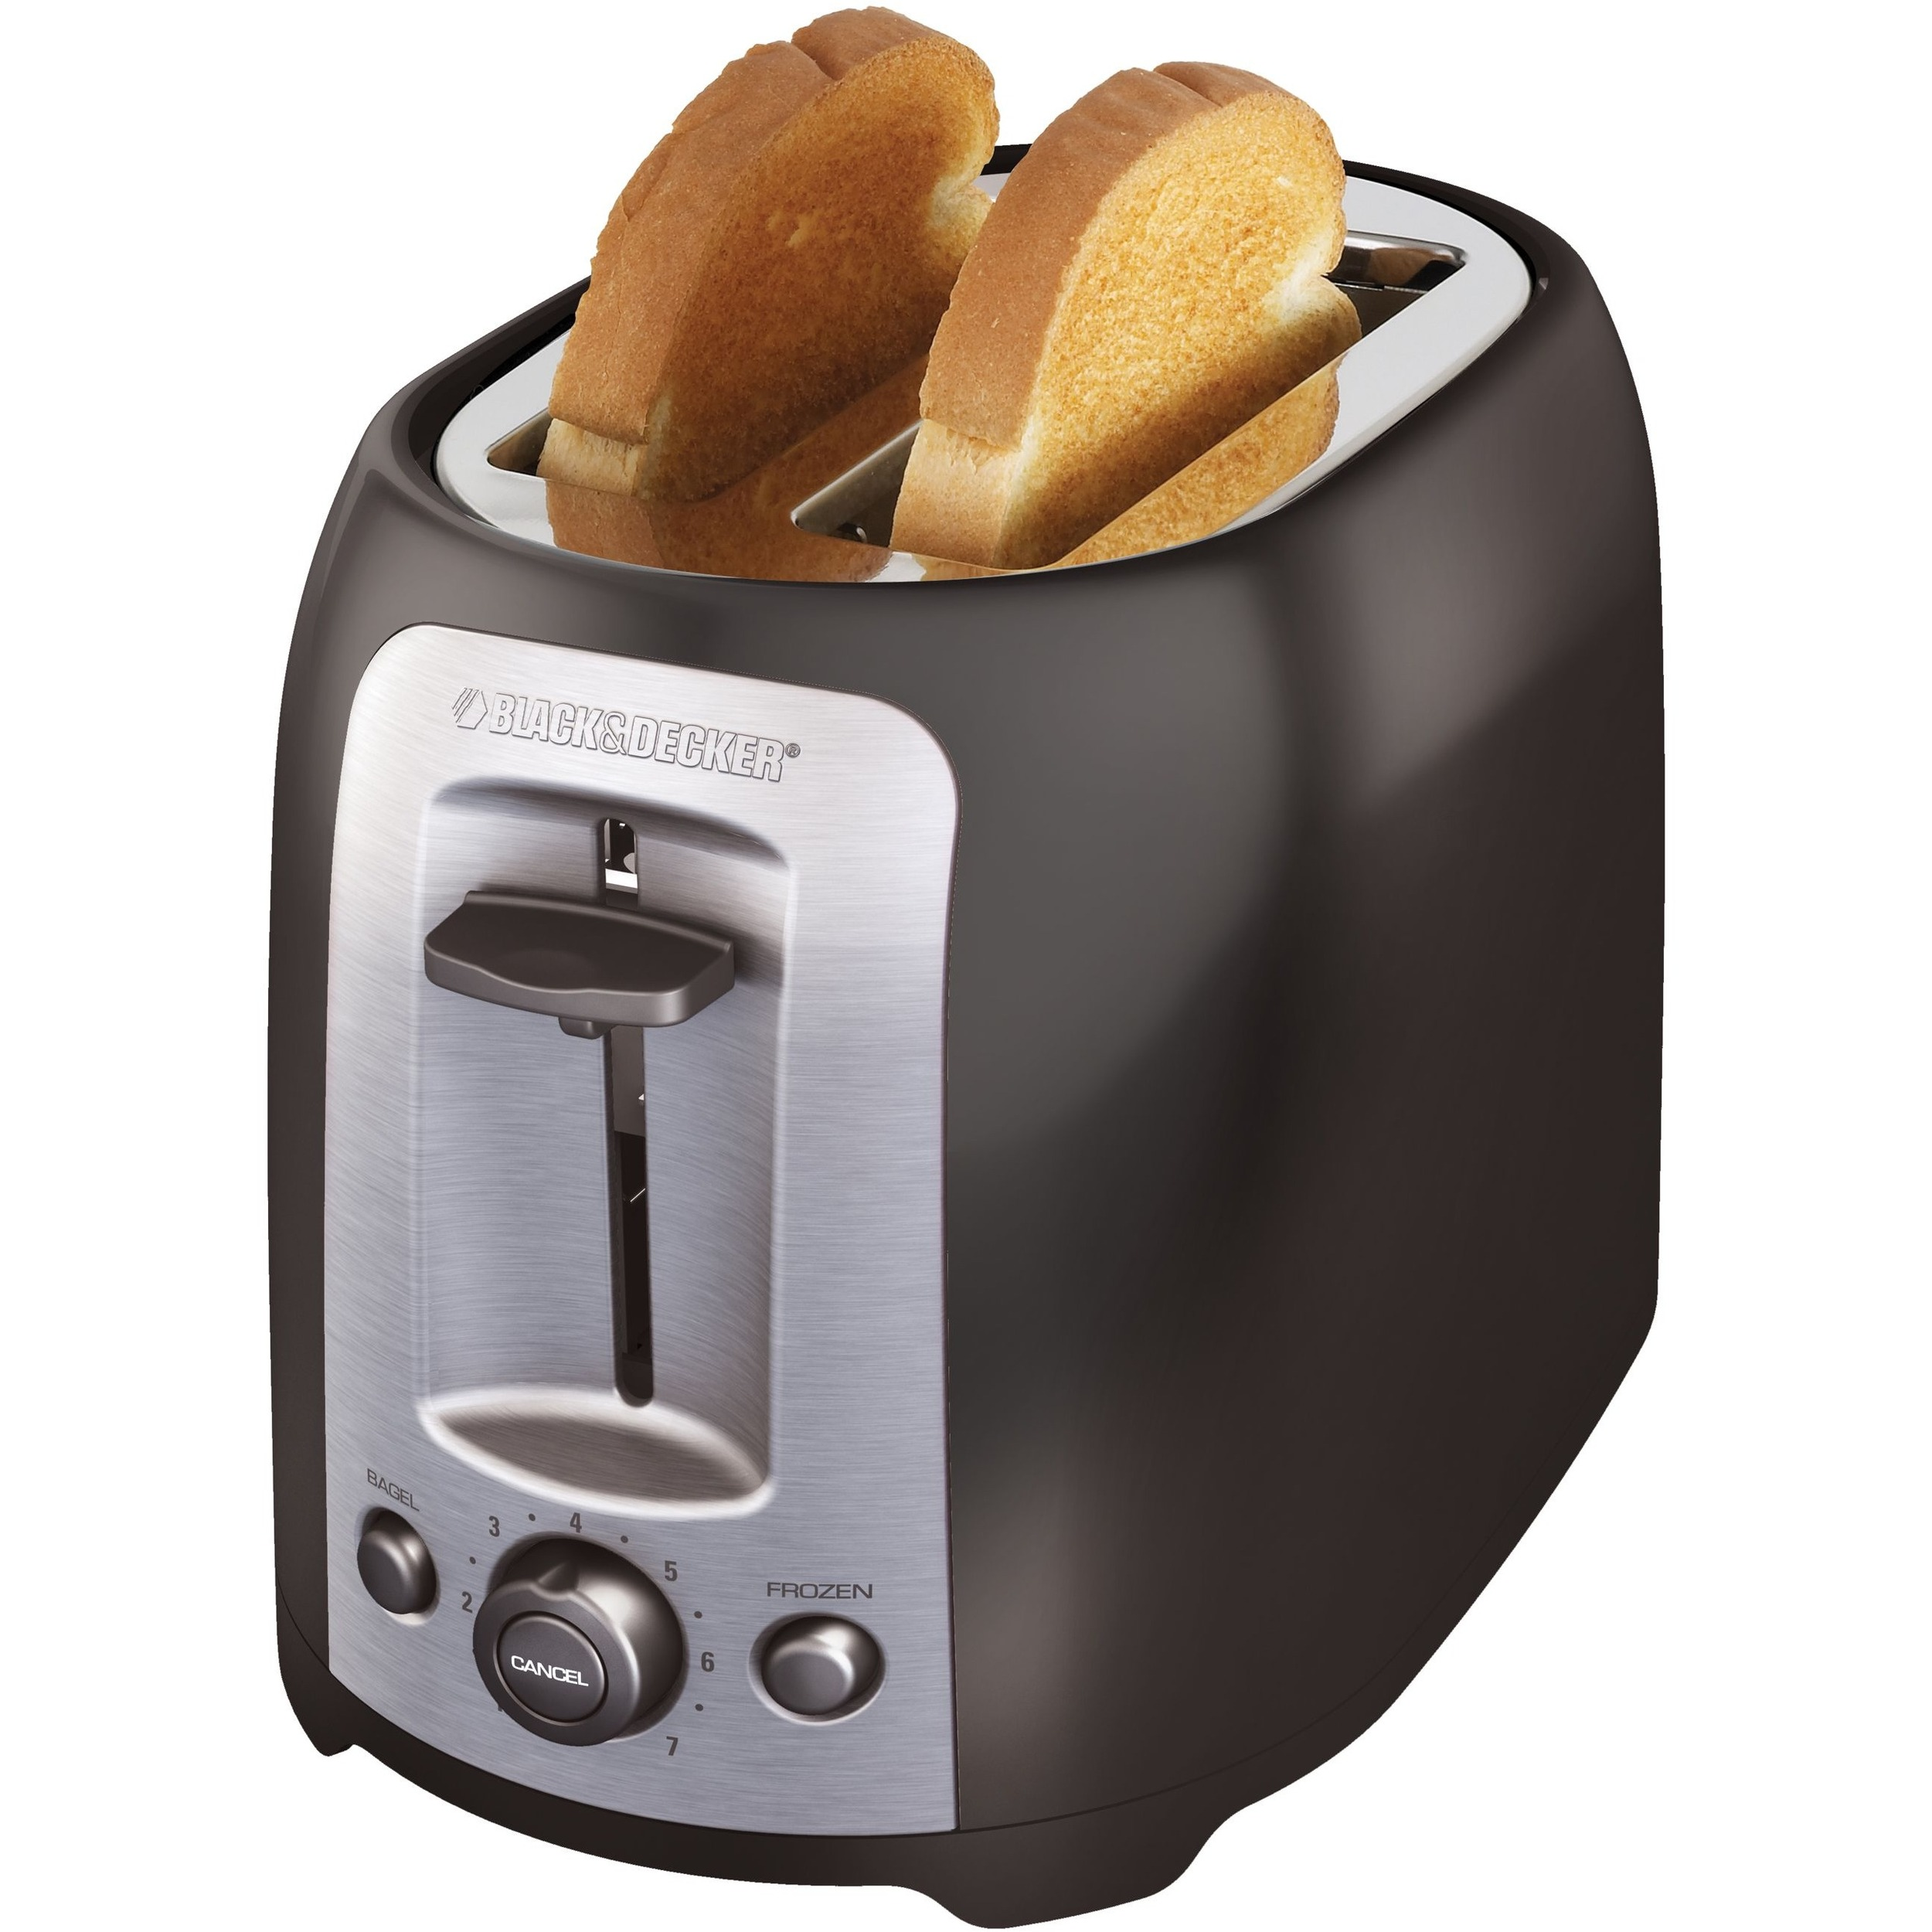 image is details toaster about extra slice black hotpoint digital uk loading lift tt itm control